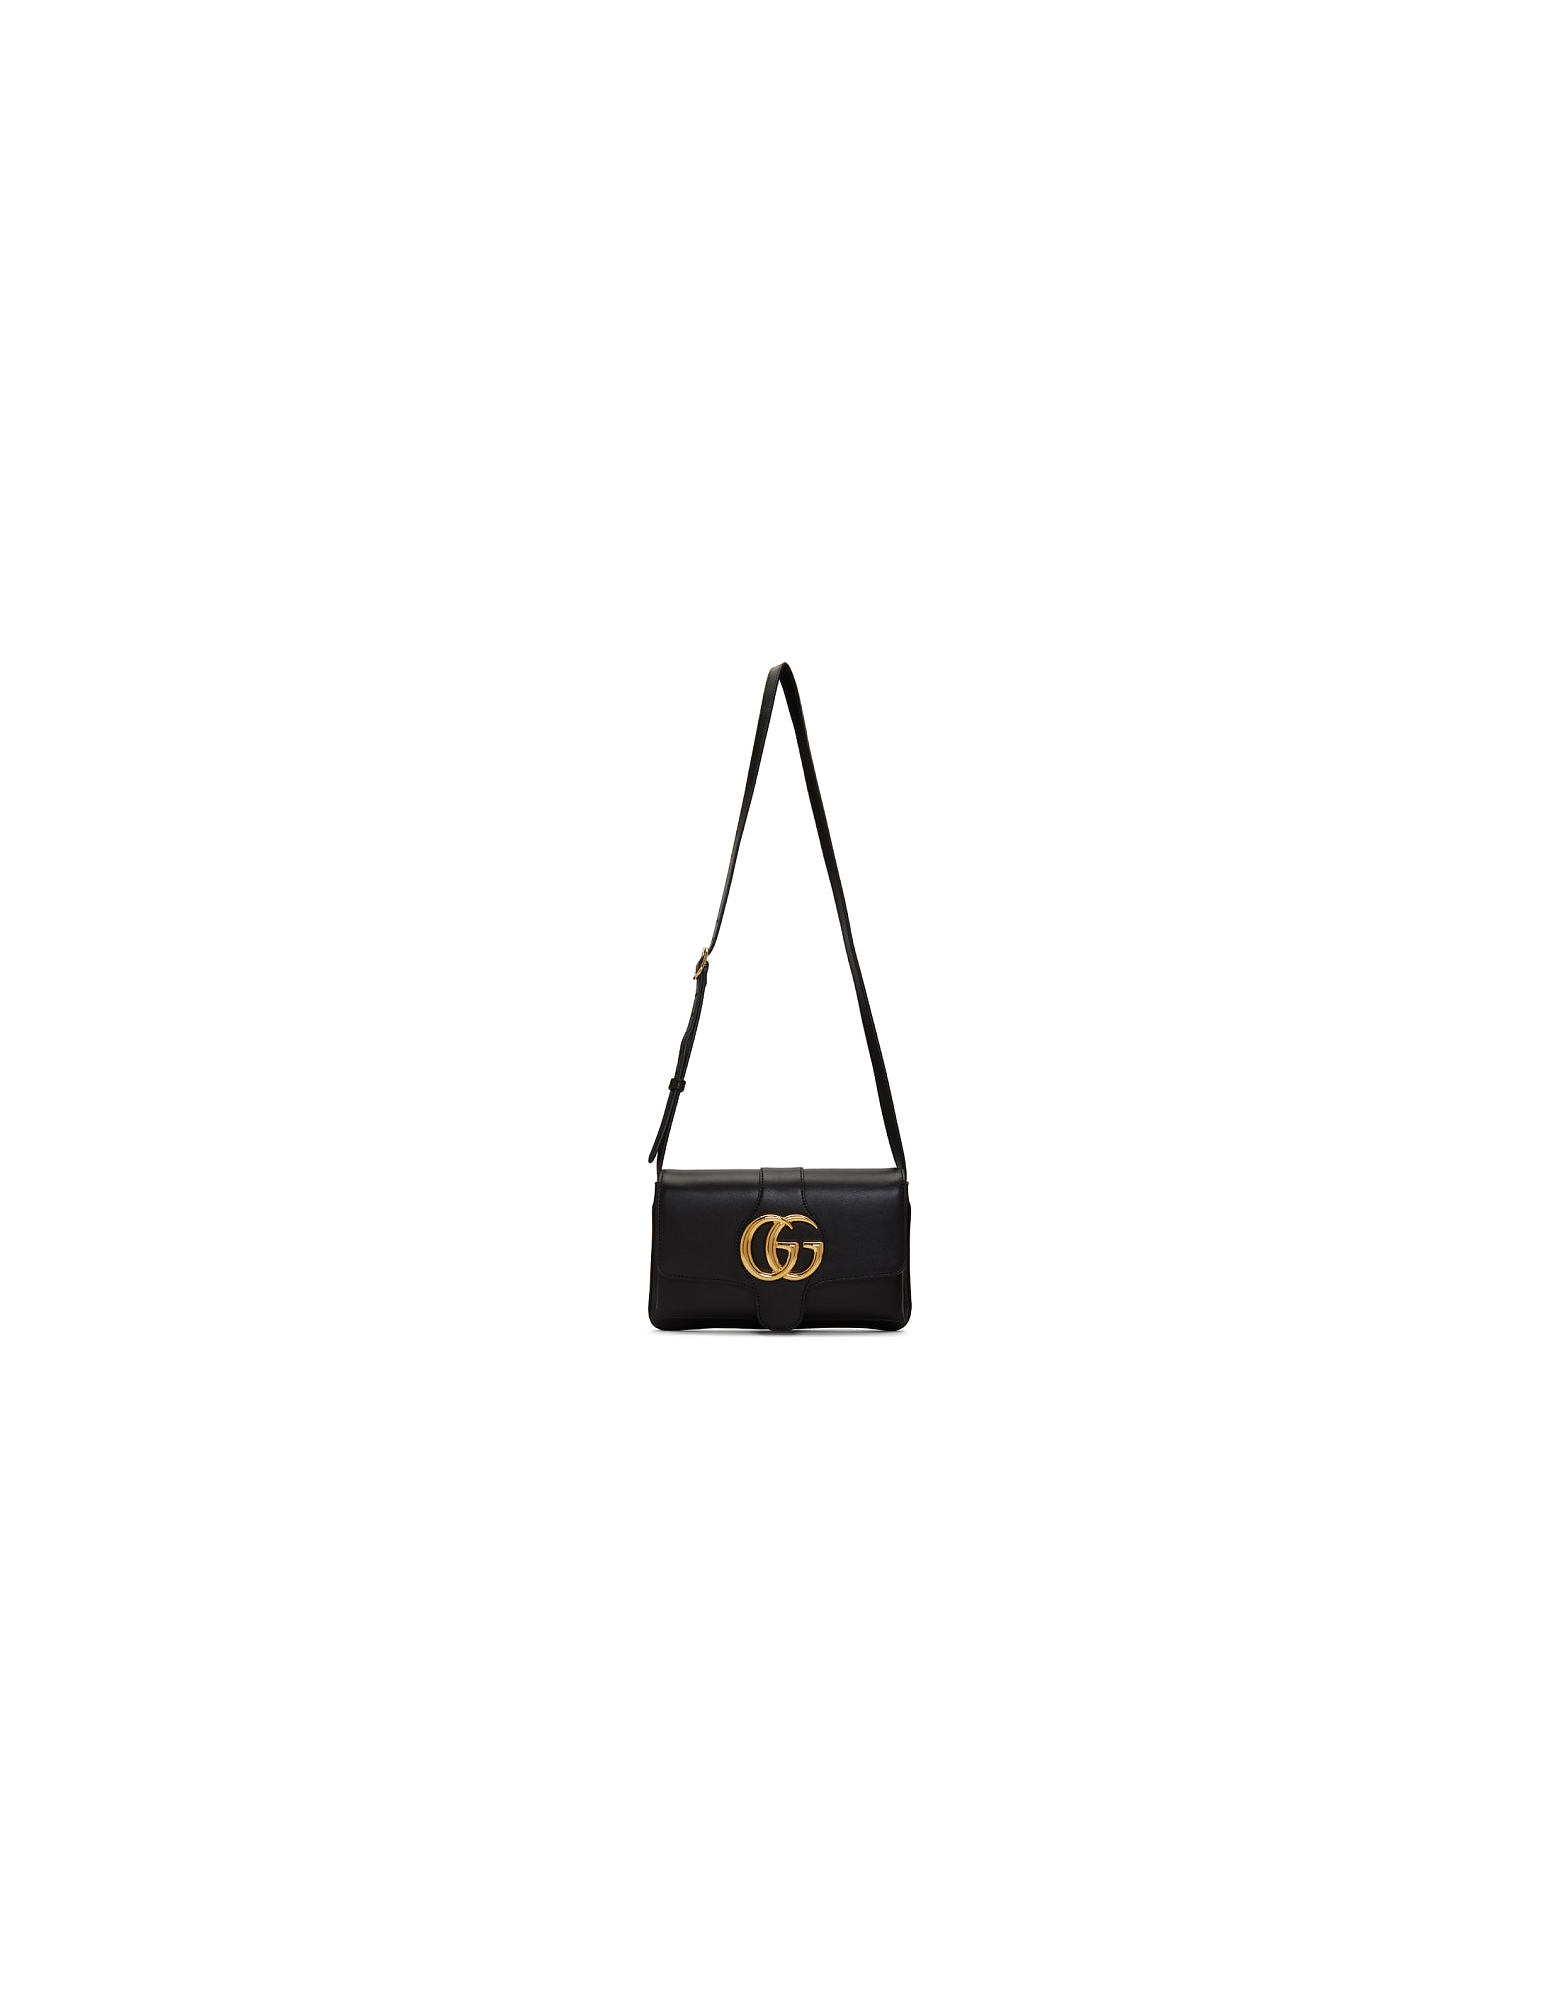 Gucci Designer Handbags, Black Small Arli Shoulder Bag